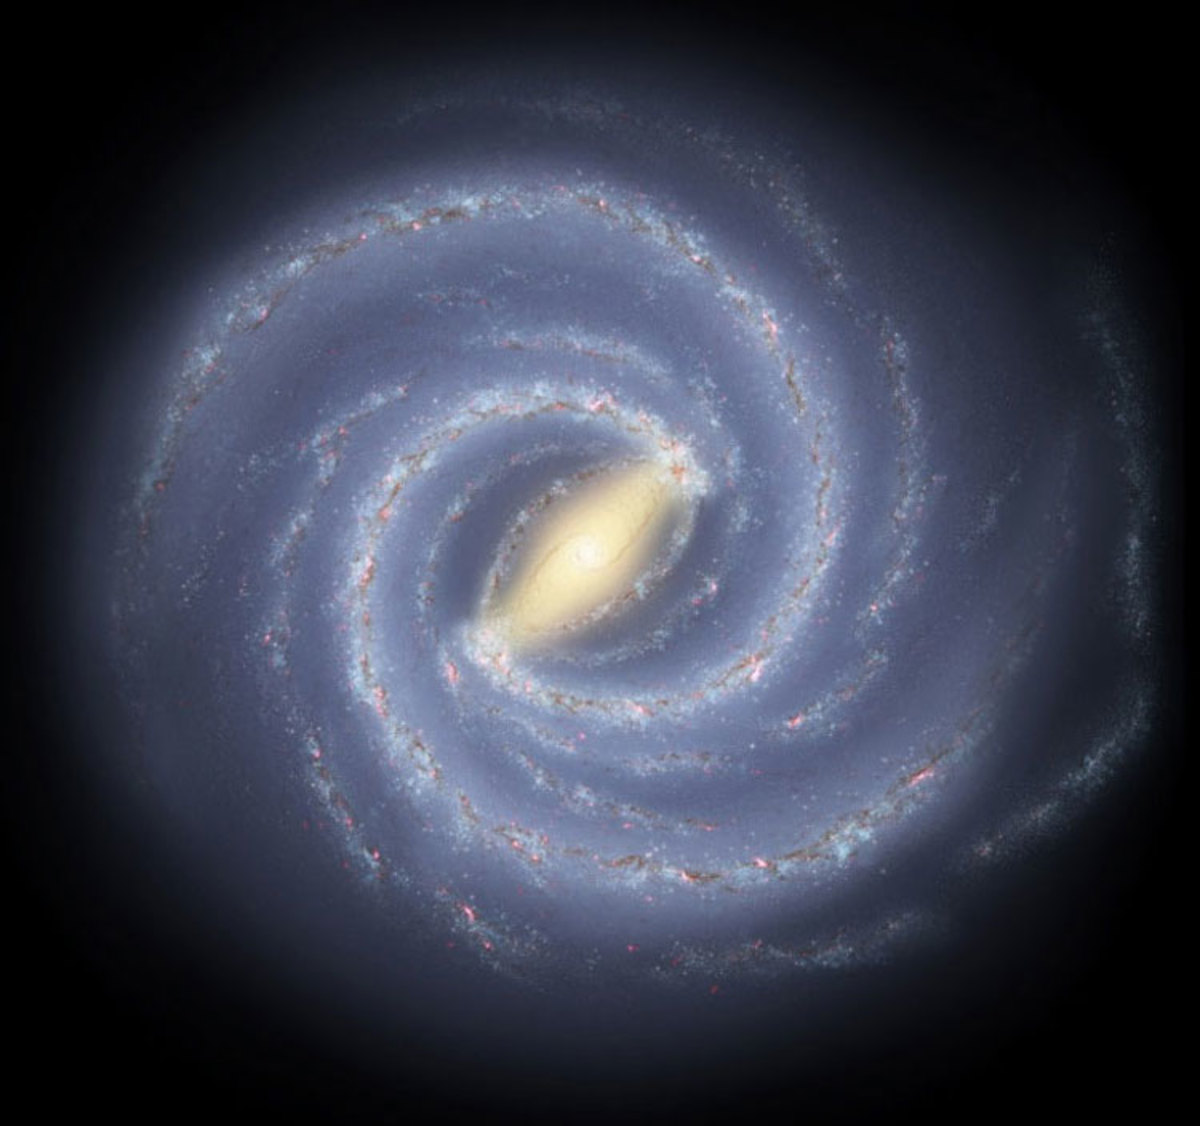 In this artist rendition we can see the milky way galaxy. Below the center and approximately four spiral arms outward, lie the sun and our solar system. Or approximately 25,000 light years from the core of the milky way